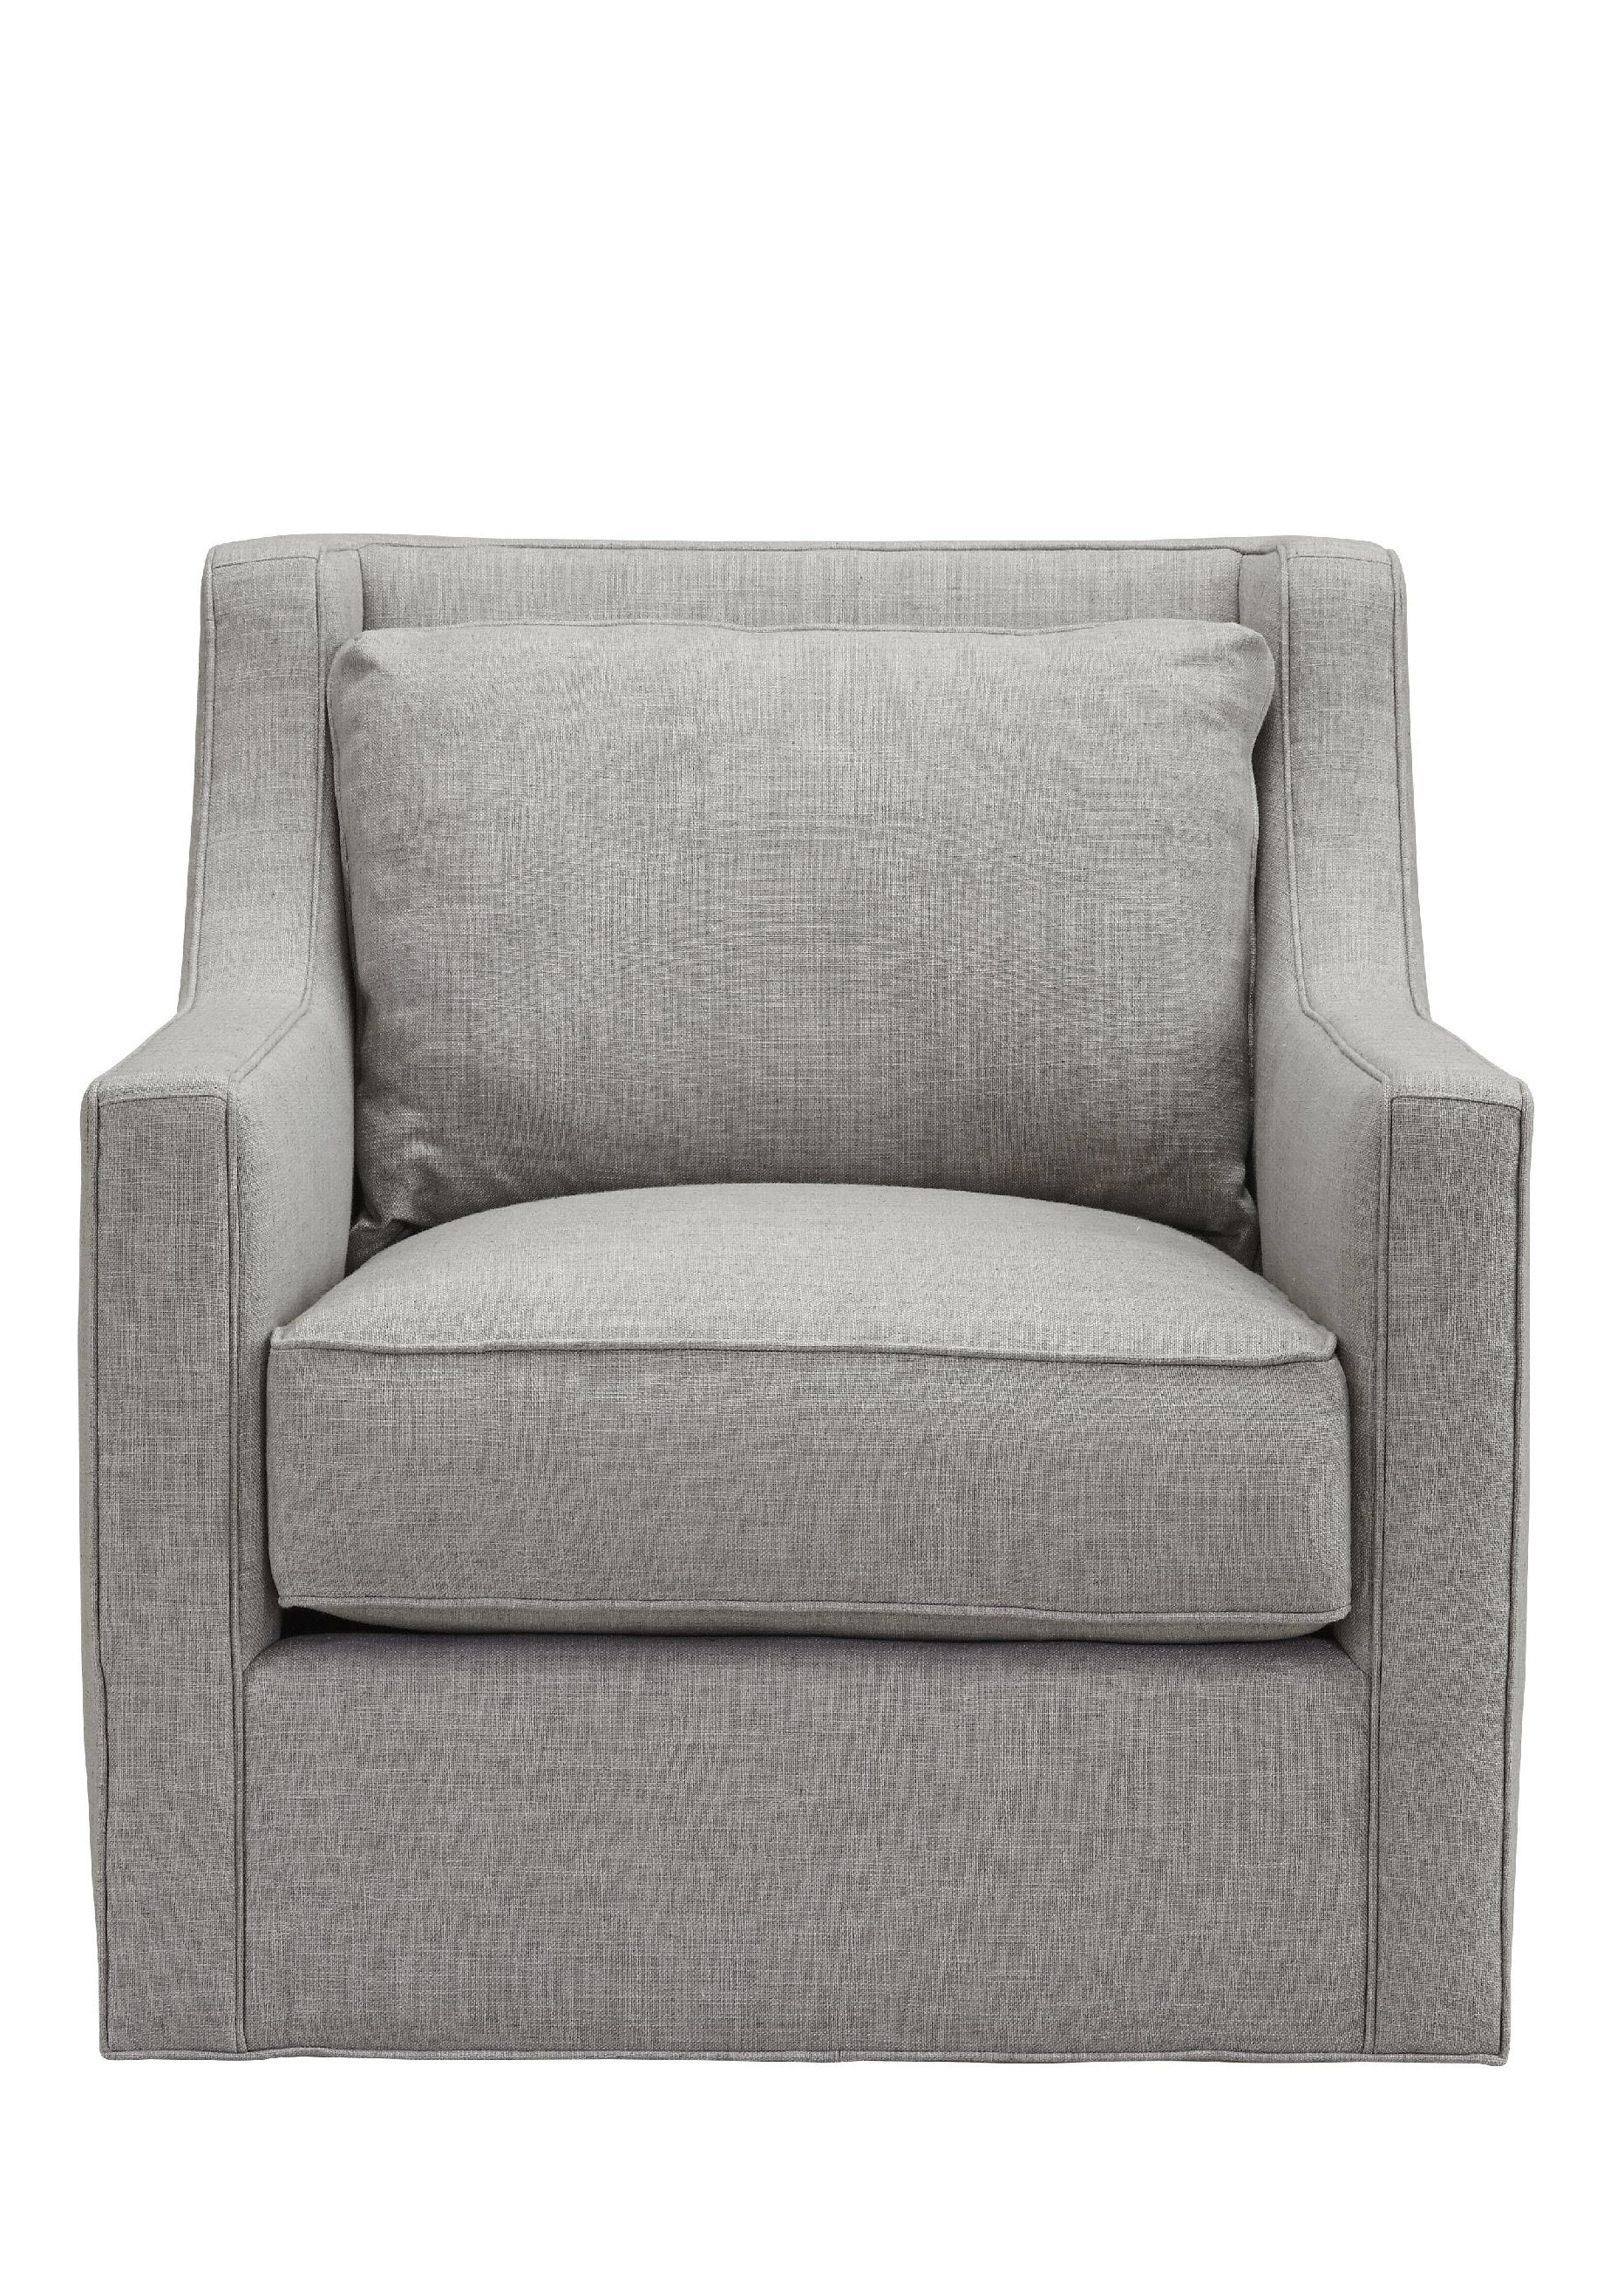 Southern Furniture Living Room Salina Swivel Chair 32019 At Whitley  Furniture Galleries